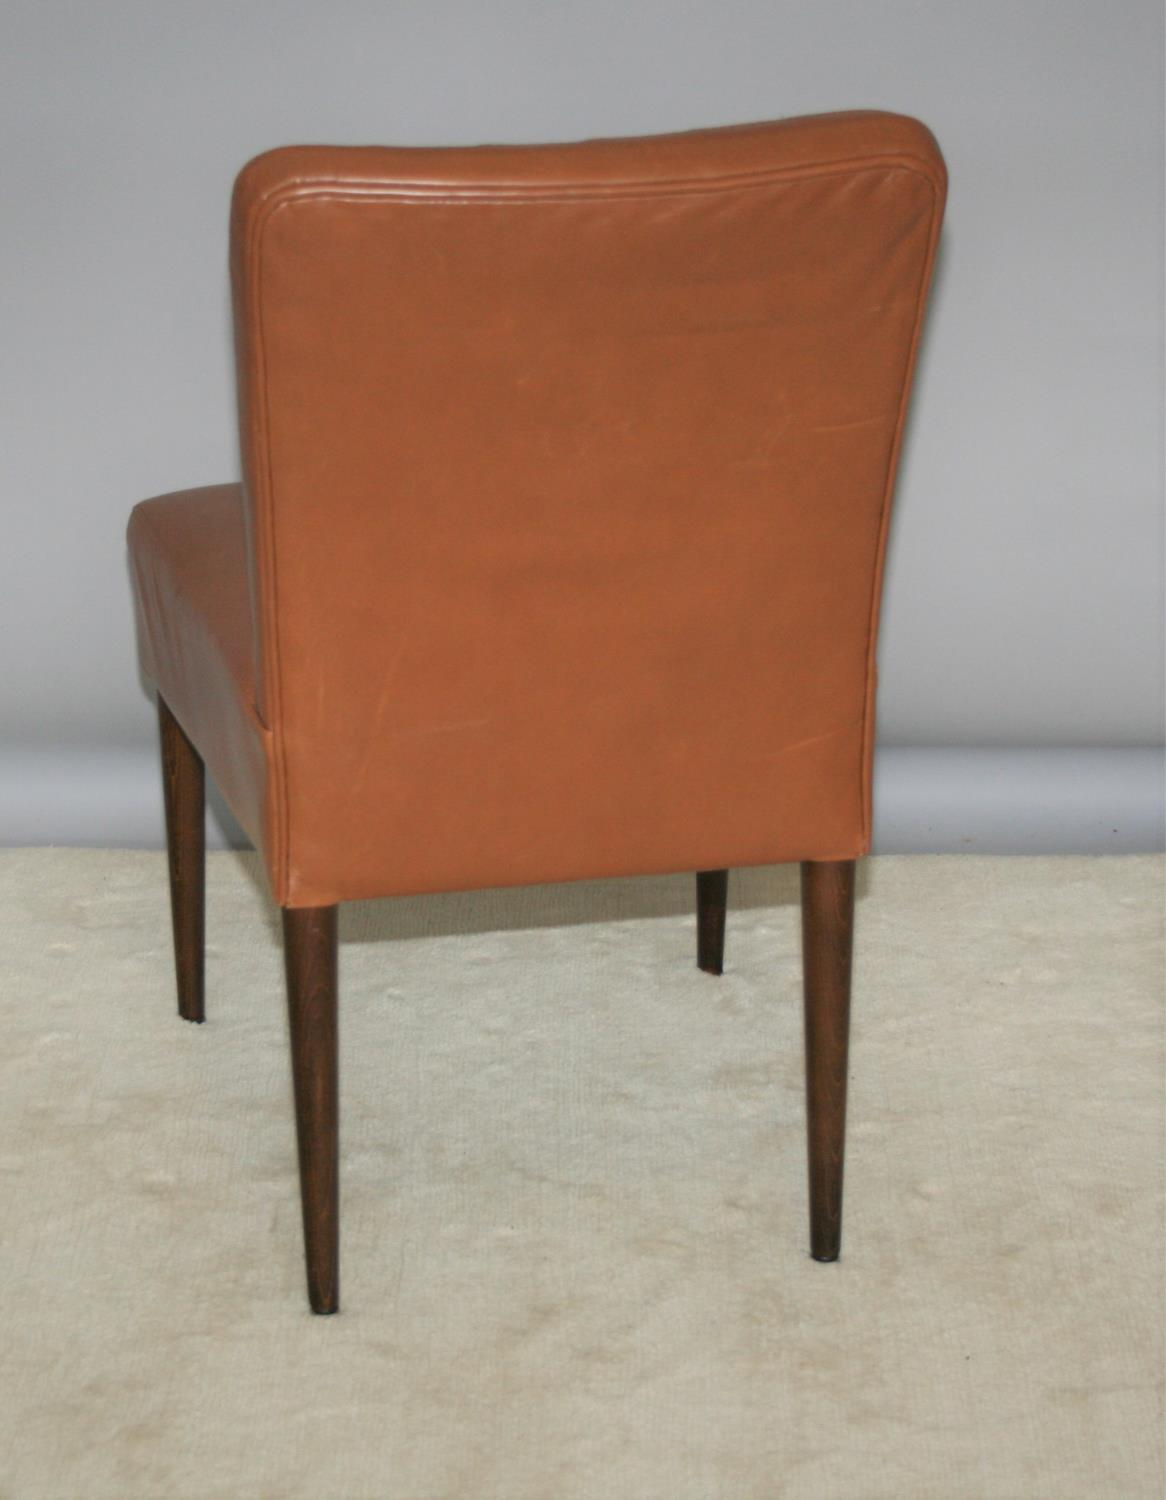 Set of three stylish brown leather ribbed back chairs 18 W x 34 H x 18 D - Image 2 of 2